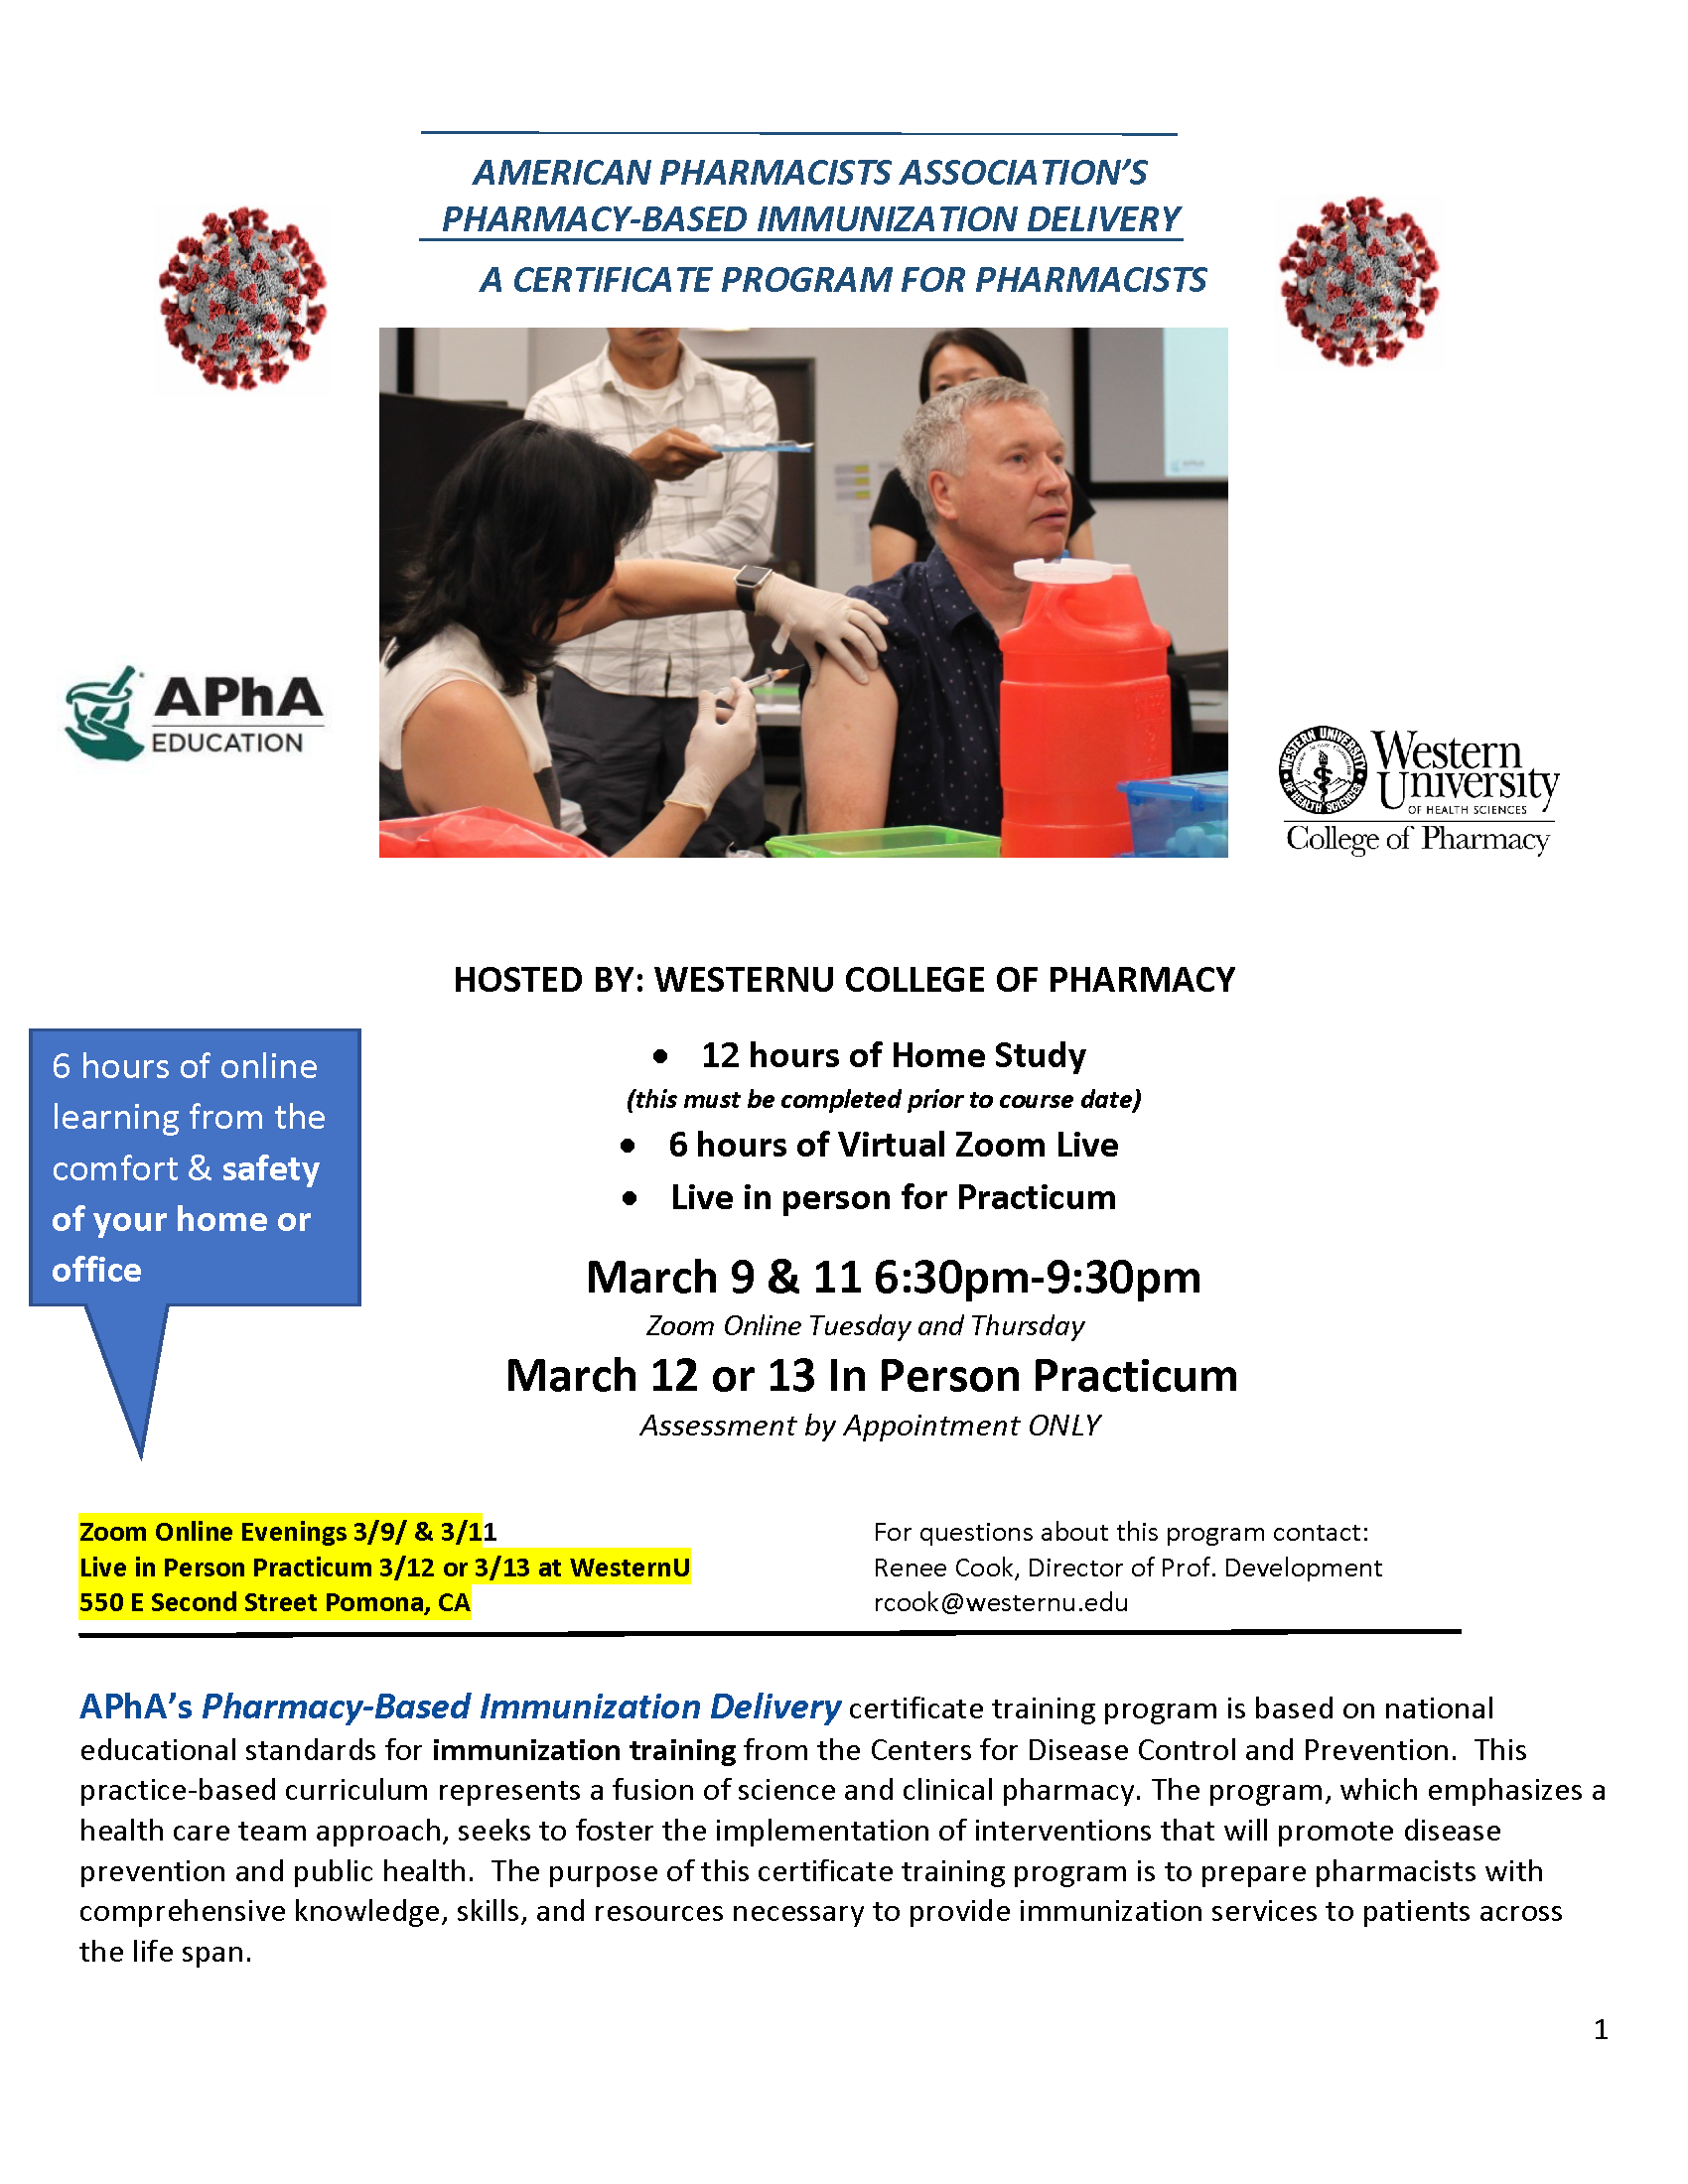 APhA's Pharmacy-Based Immunization Delivery certificate training program flyer